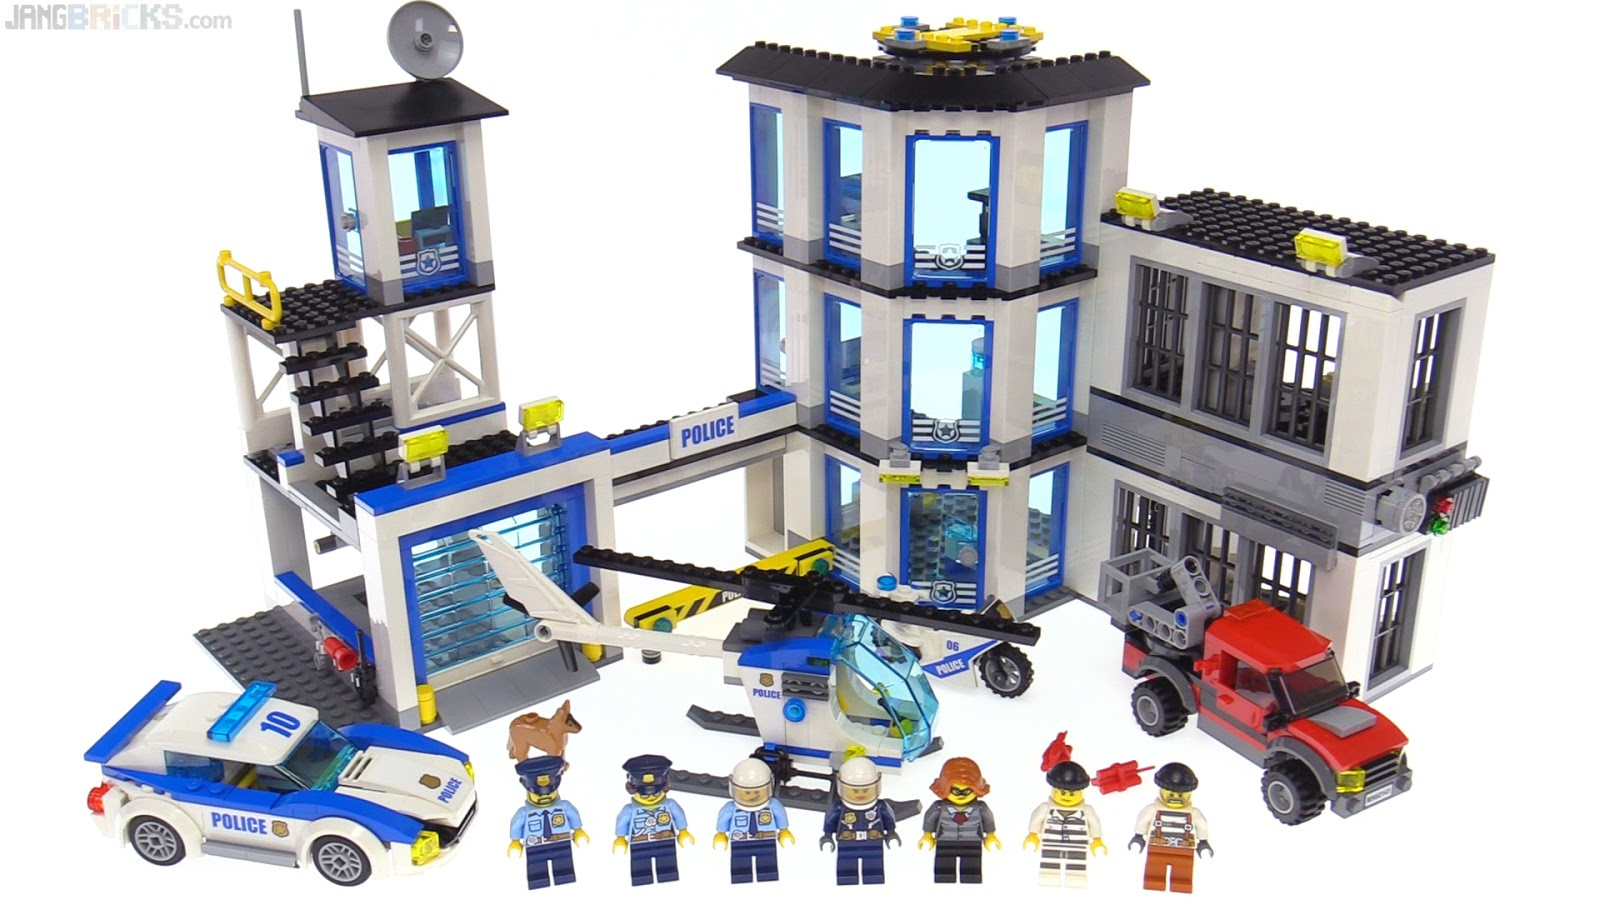 LEGO City 2017 Police Station review - 60141